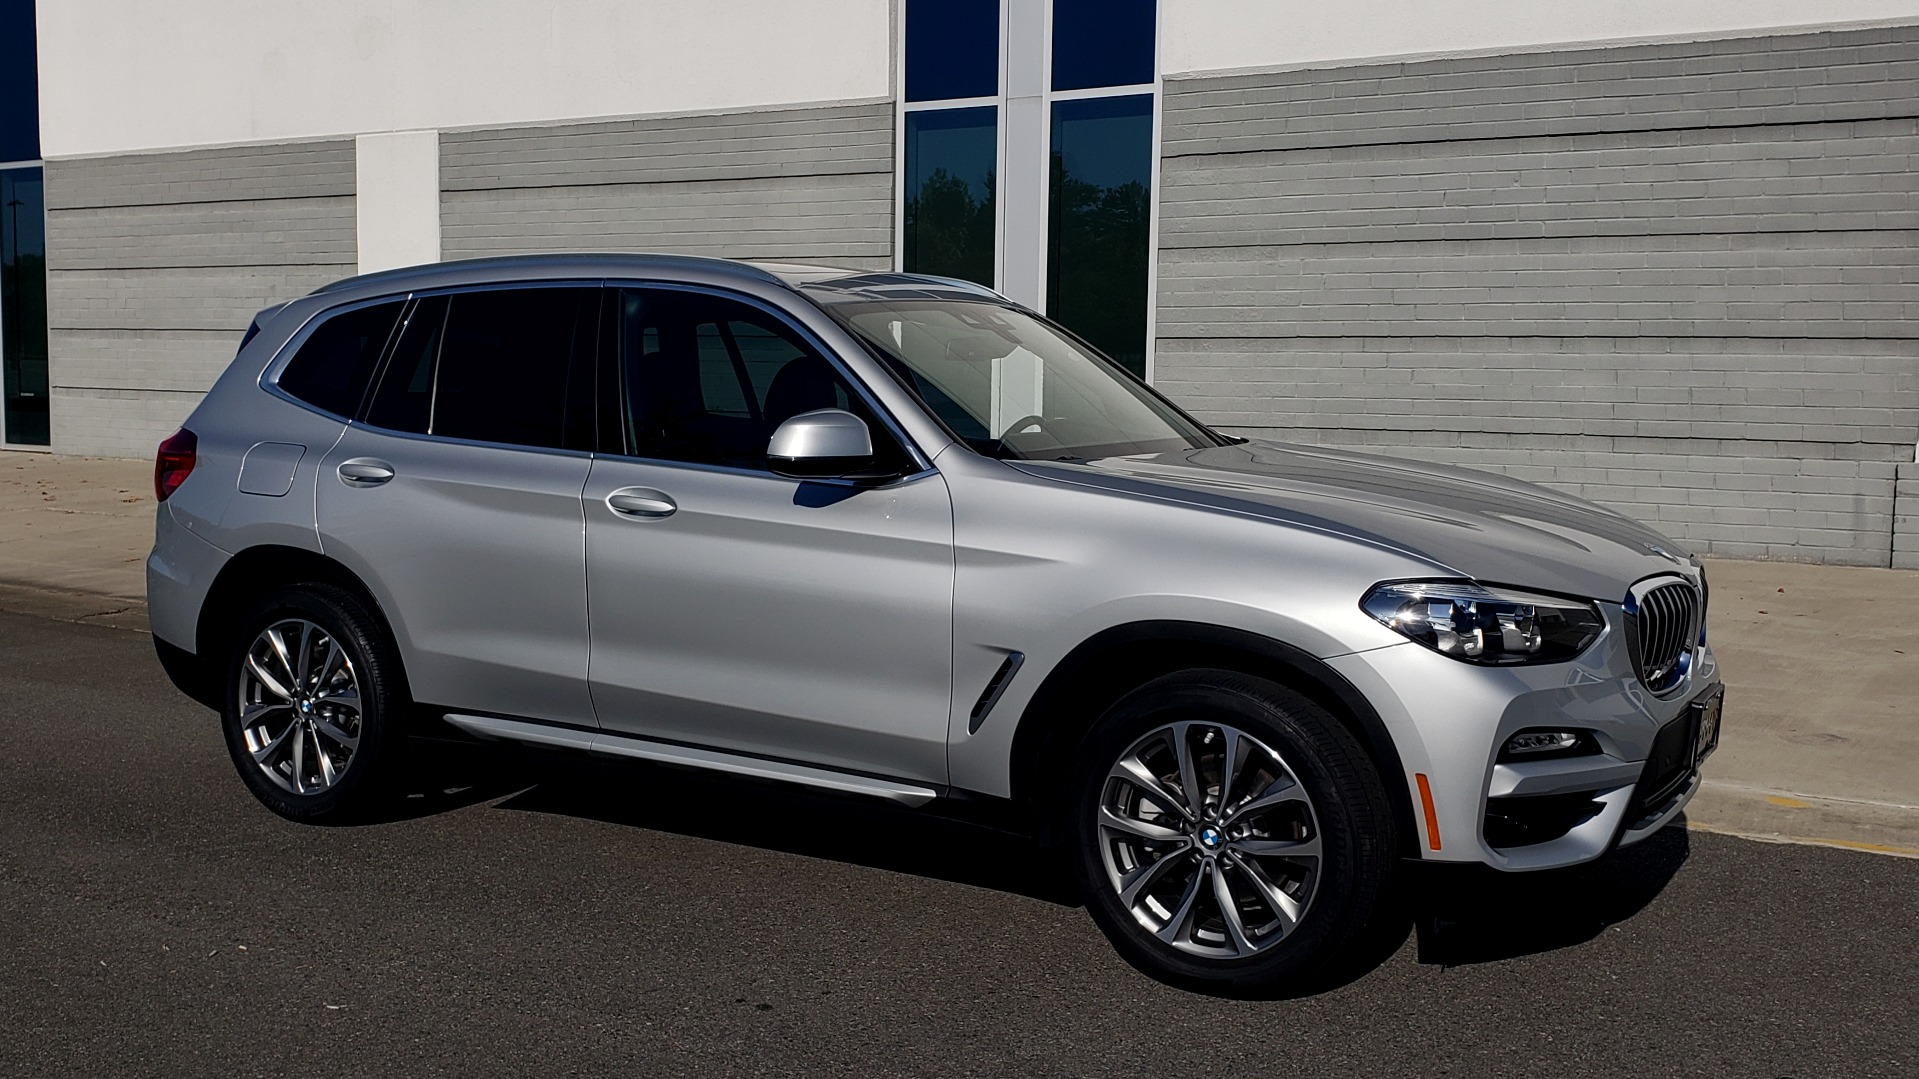 Used 2019 BMW X3 XDRIVE30I / DRVR ASST / PANO-ROOF / HTD STS / REARVIEW for sale $41,995 at Formula Imports in Charlotte NC 28227 6